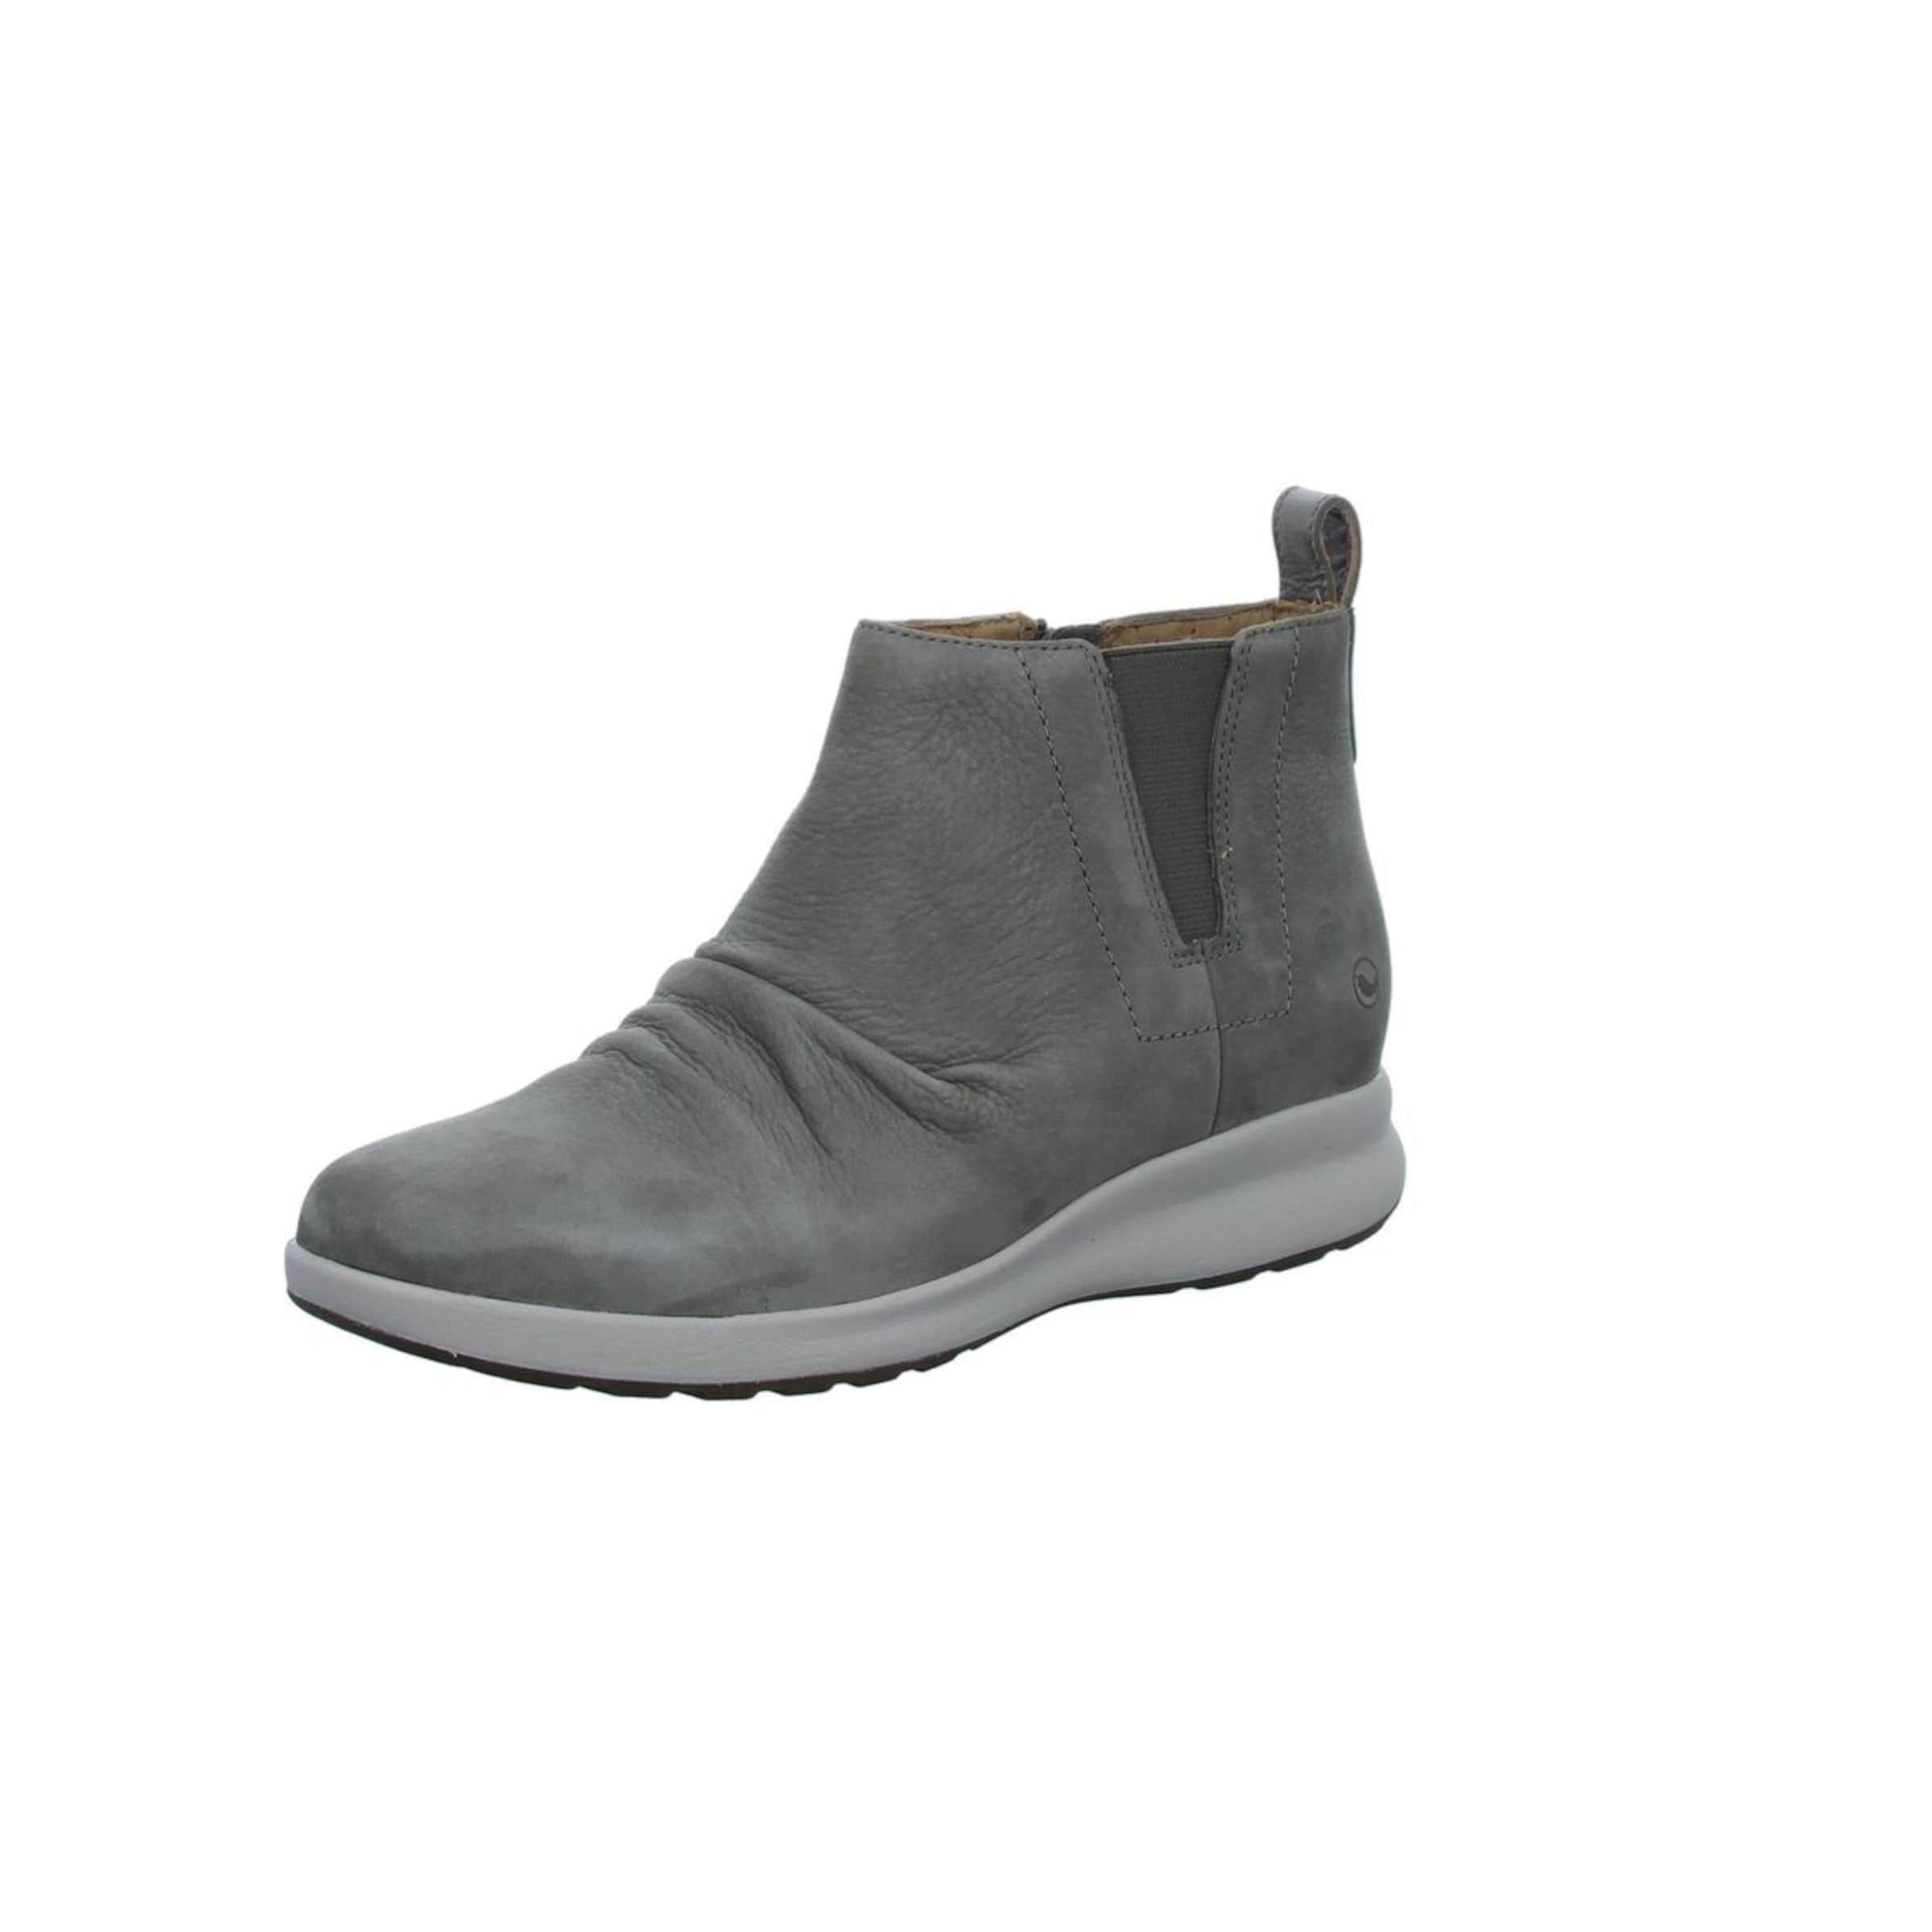 CLARKS Stiefelette in taupe